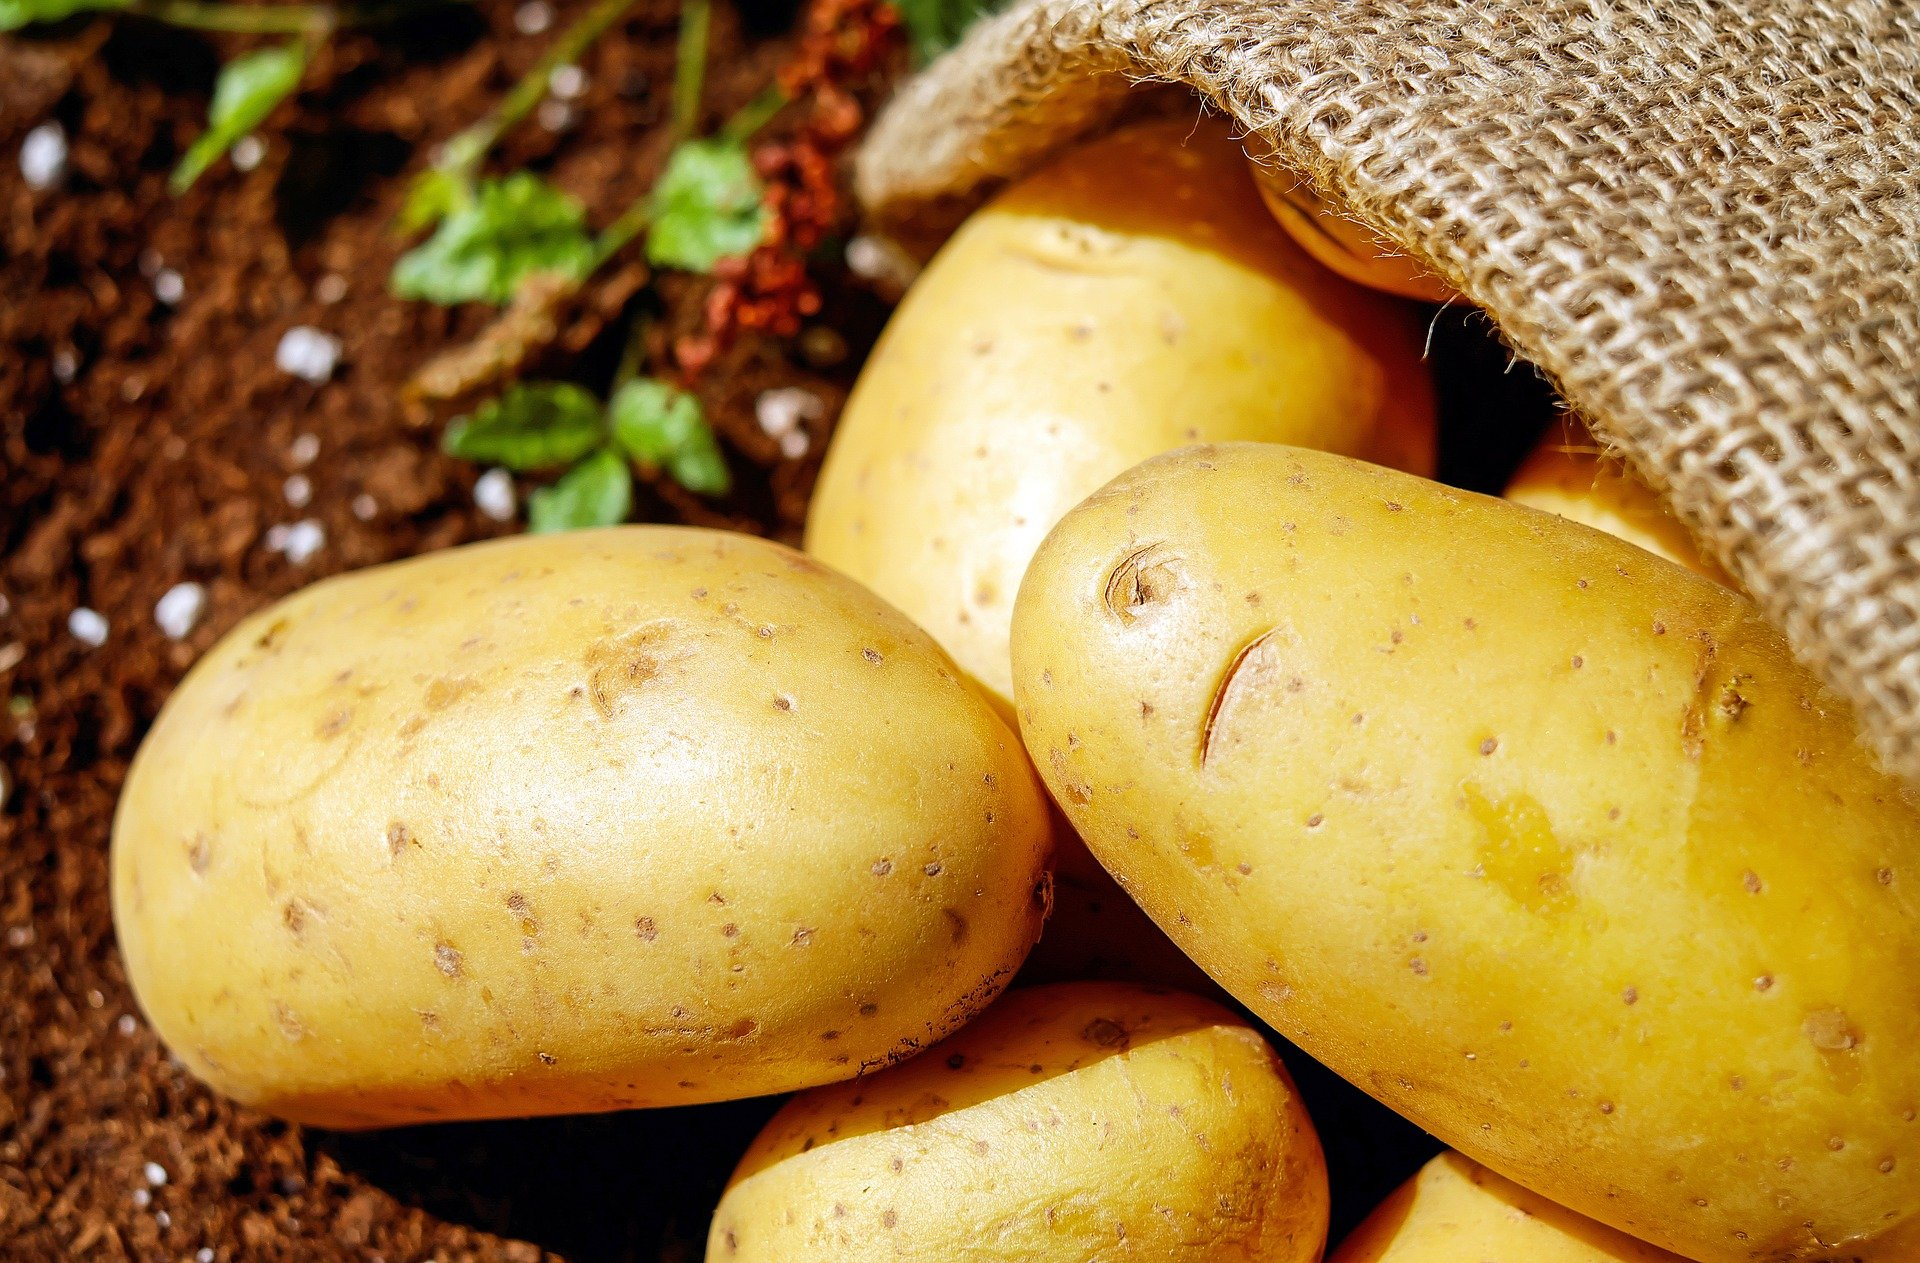 Potato facemask for skin whitening and dark spot removal